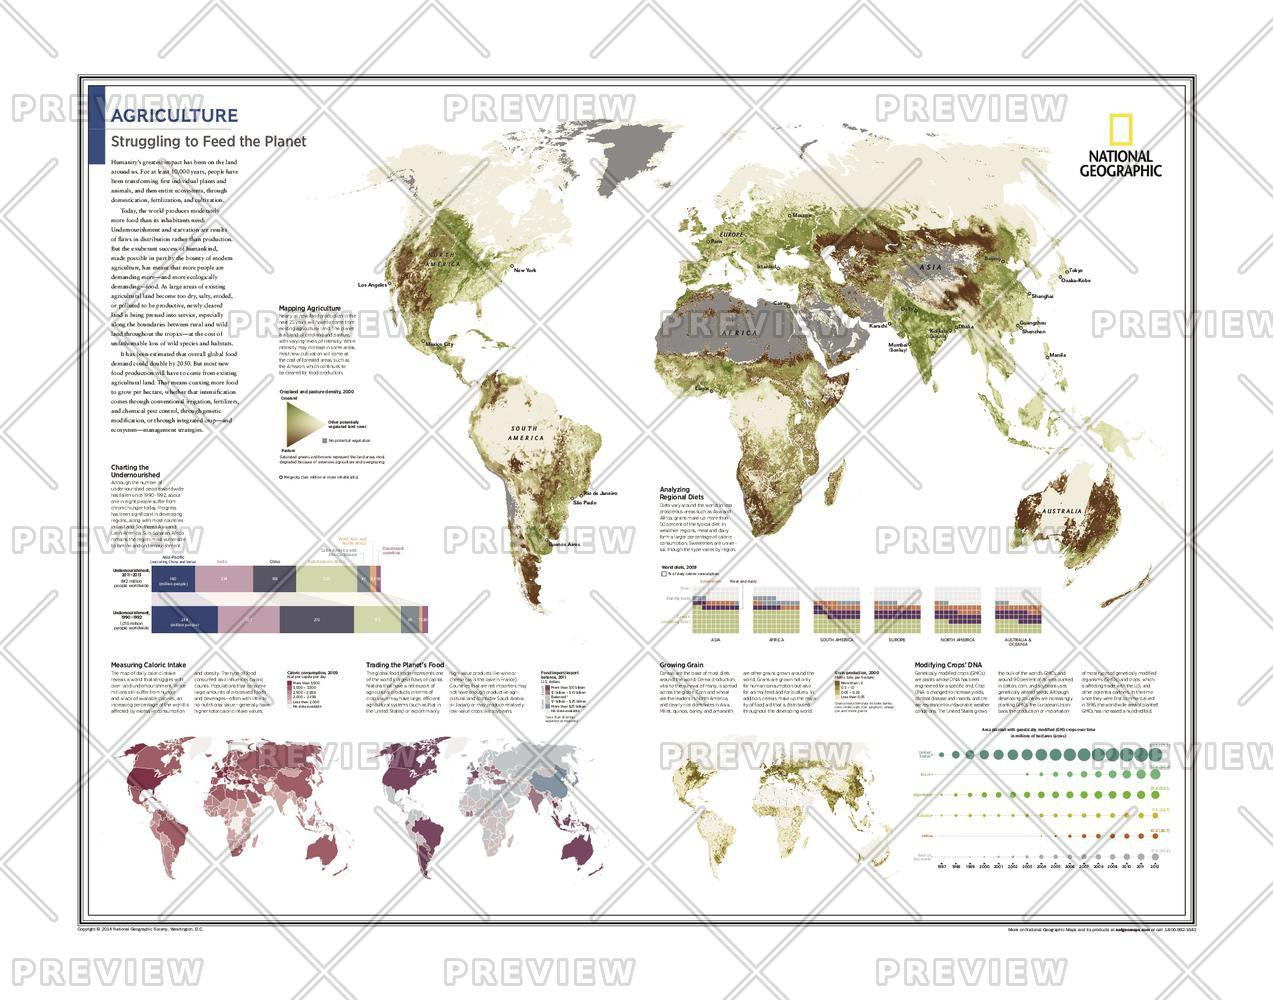 Agriculture: Struggling to Feed the Planet - Atlas of the World, 10th Edition